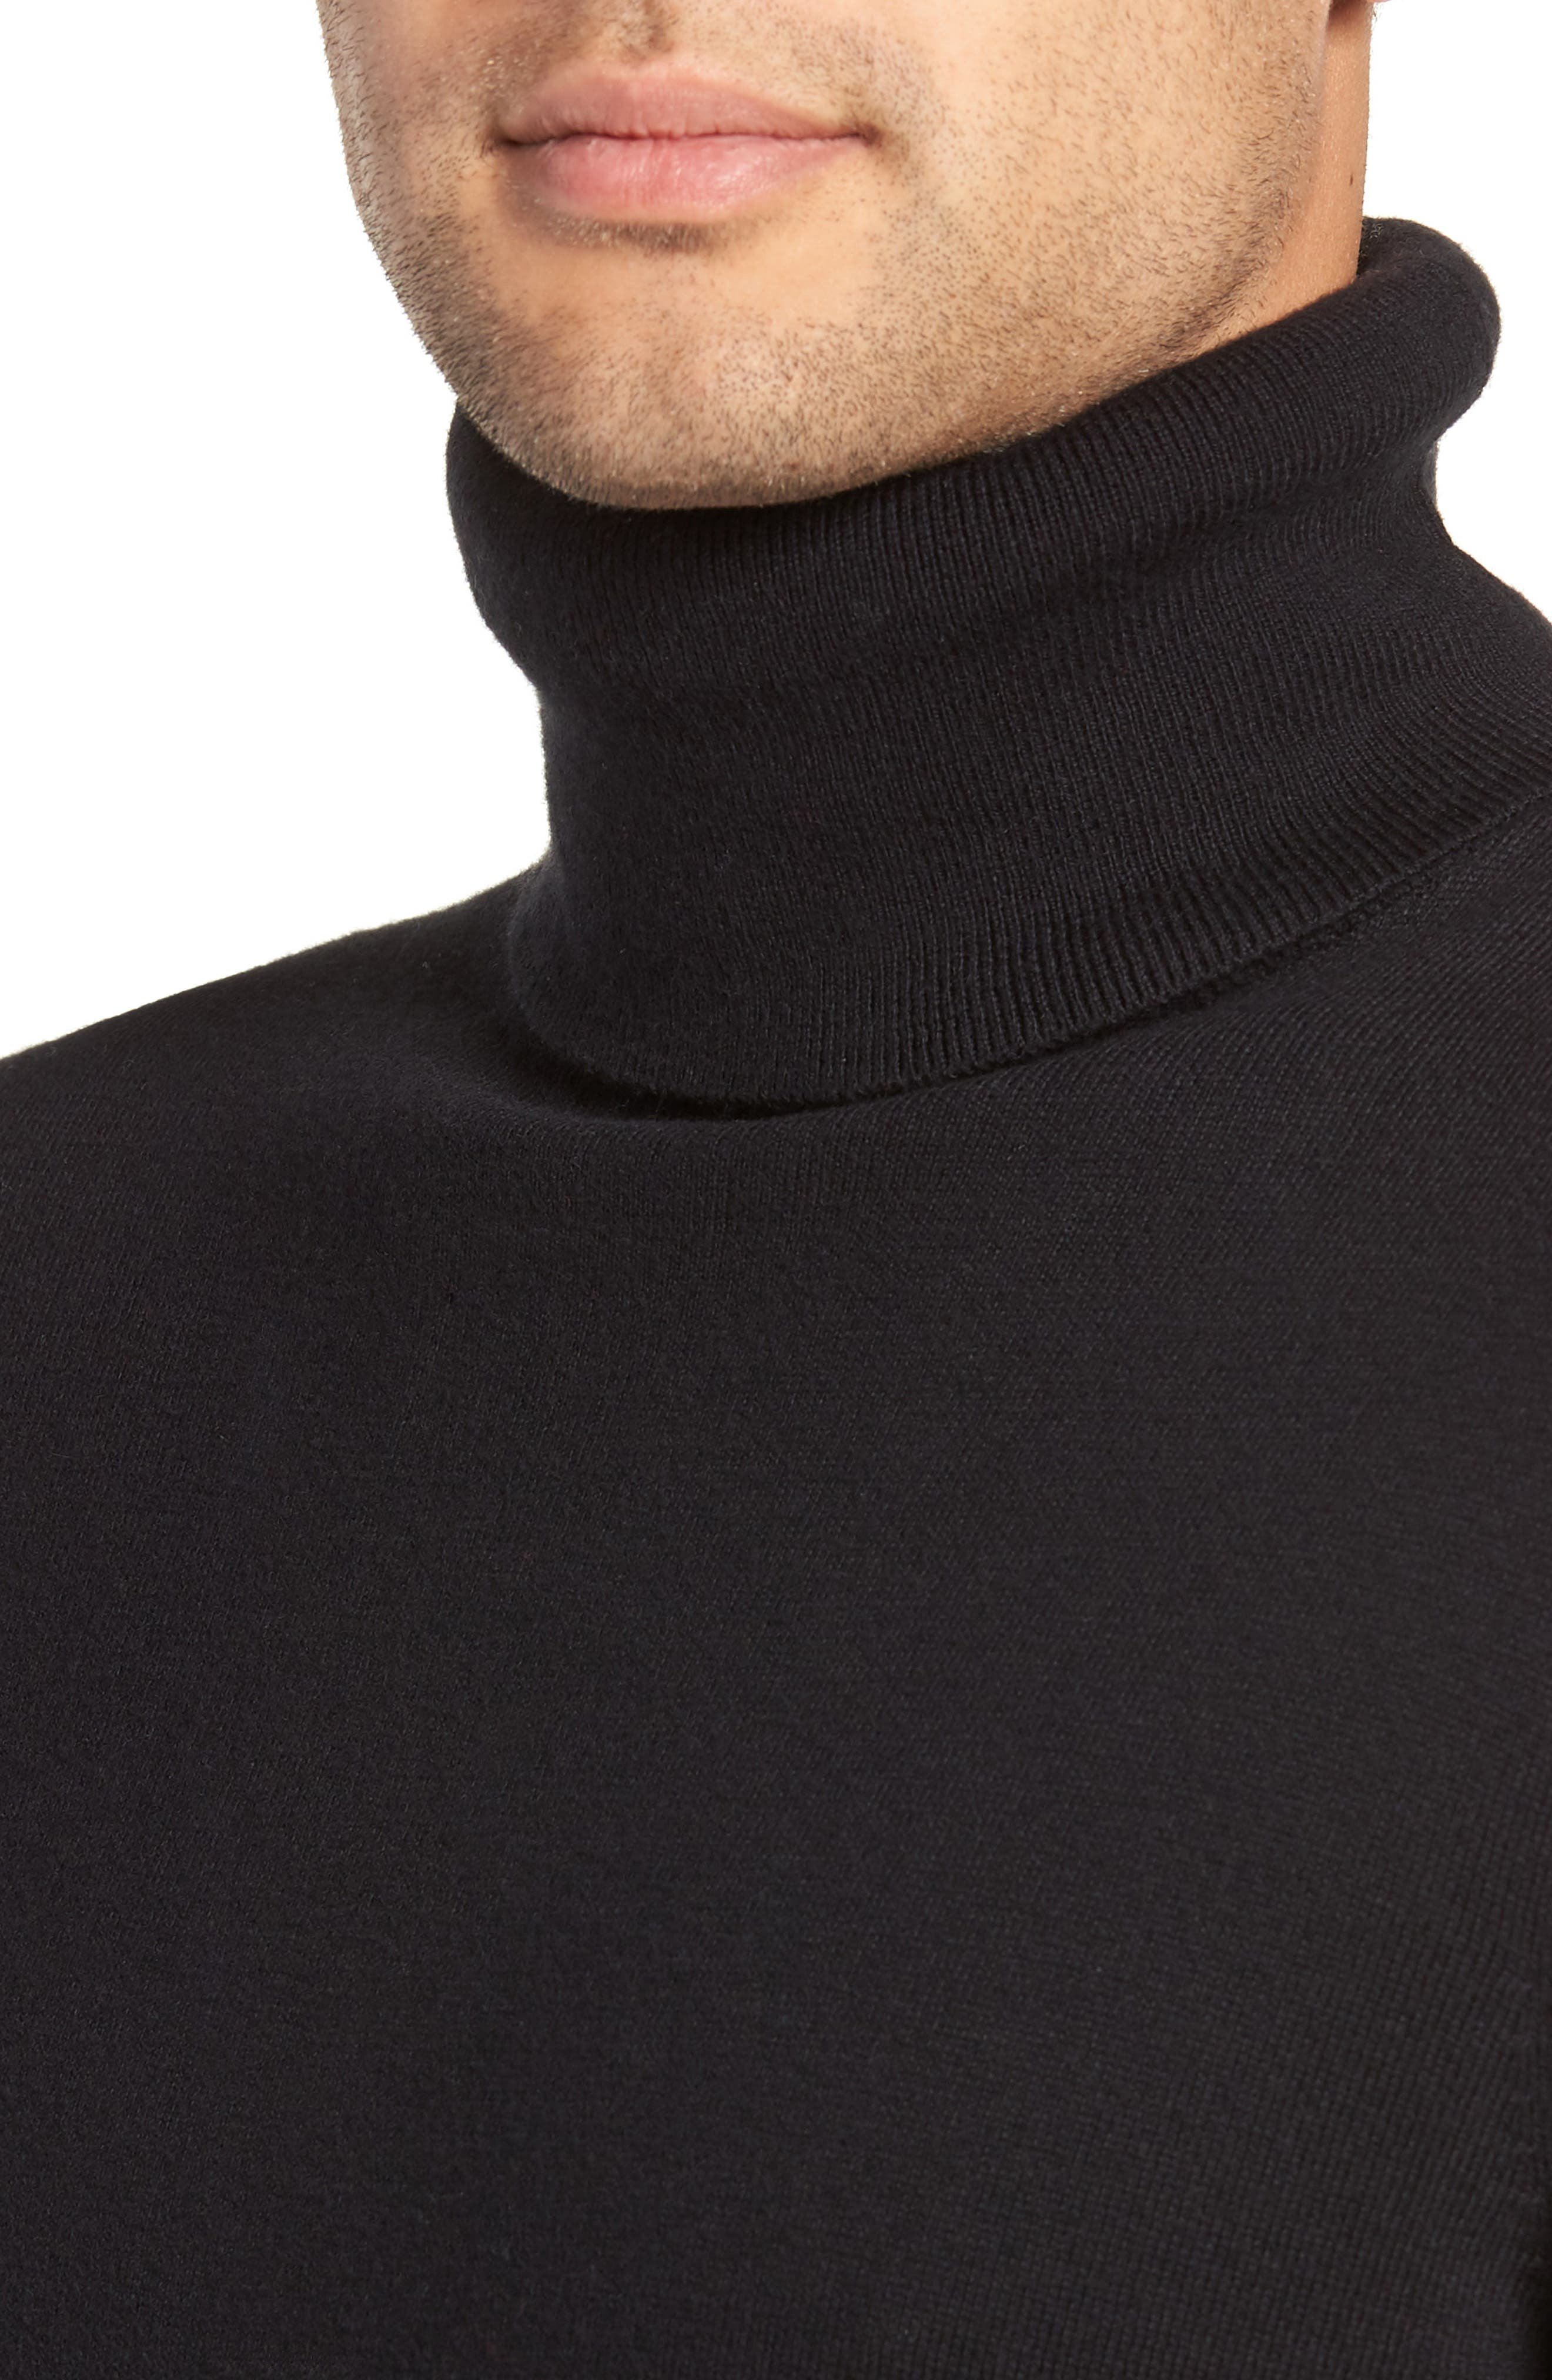 Turtleneck Sweater,                             Alternate thumbnail 4, color,                             001